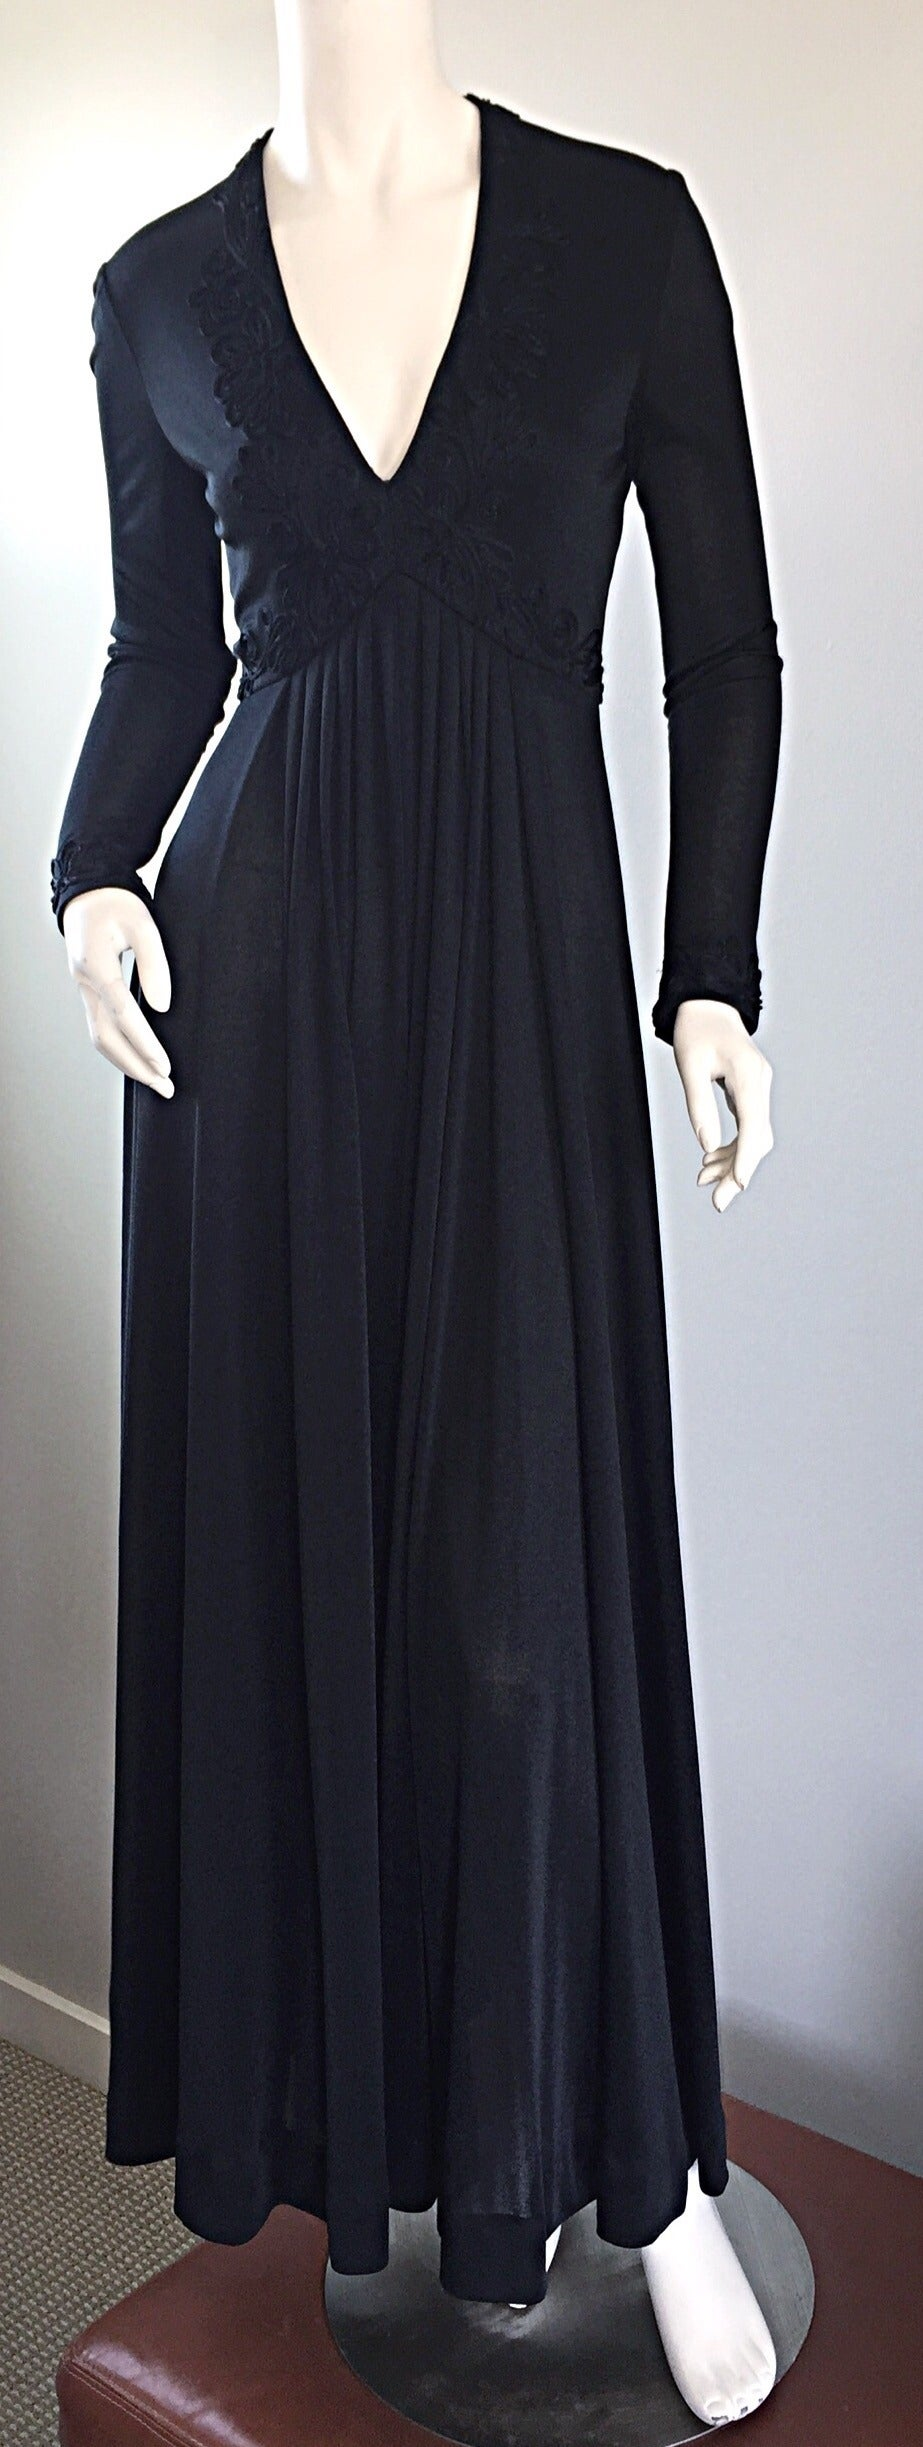 Vintage Jack Bryan Black Jersey Maxi Dress w/ Intricate Embroidery 1970s 70s 9